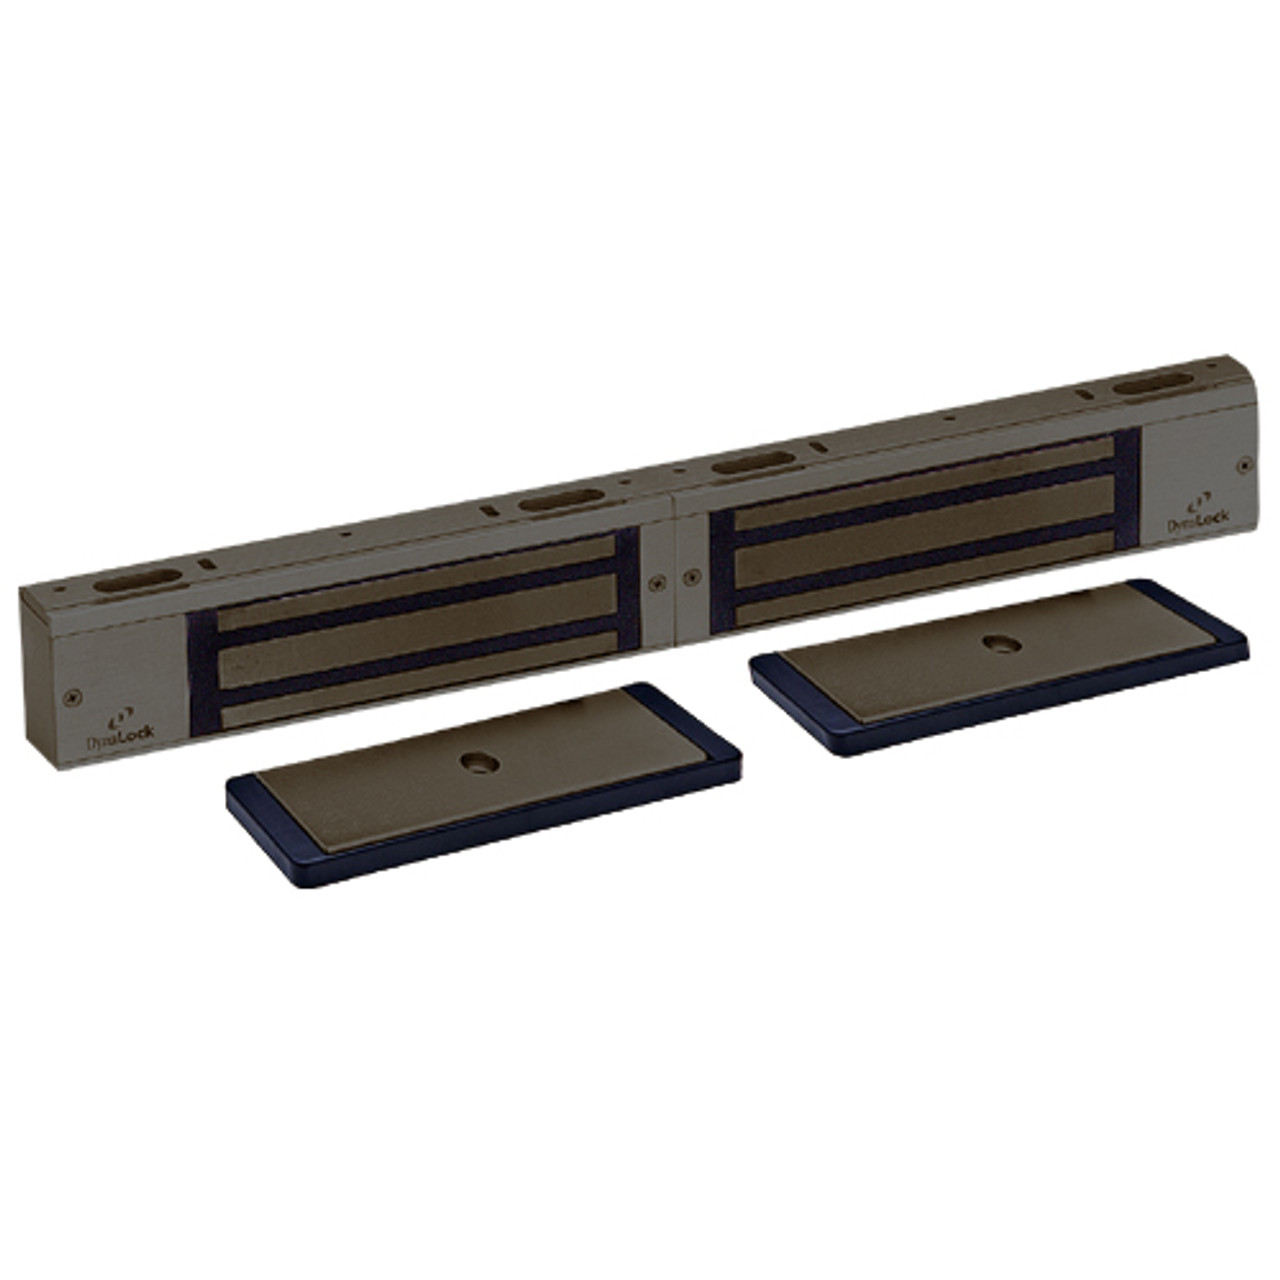 3002-US10B-HSM2 DynaLock 3000 Series 1500 LBs Double Electromagnetic Lock for Outswing Door with HSM in Oil Rubbed Bronze